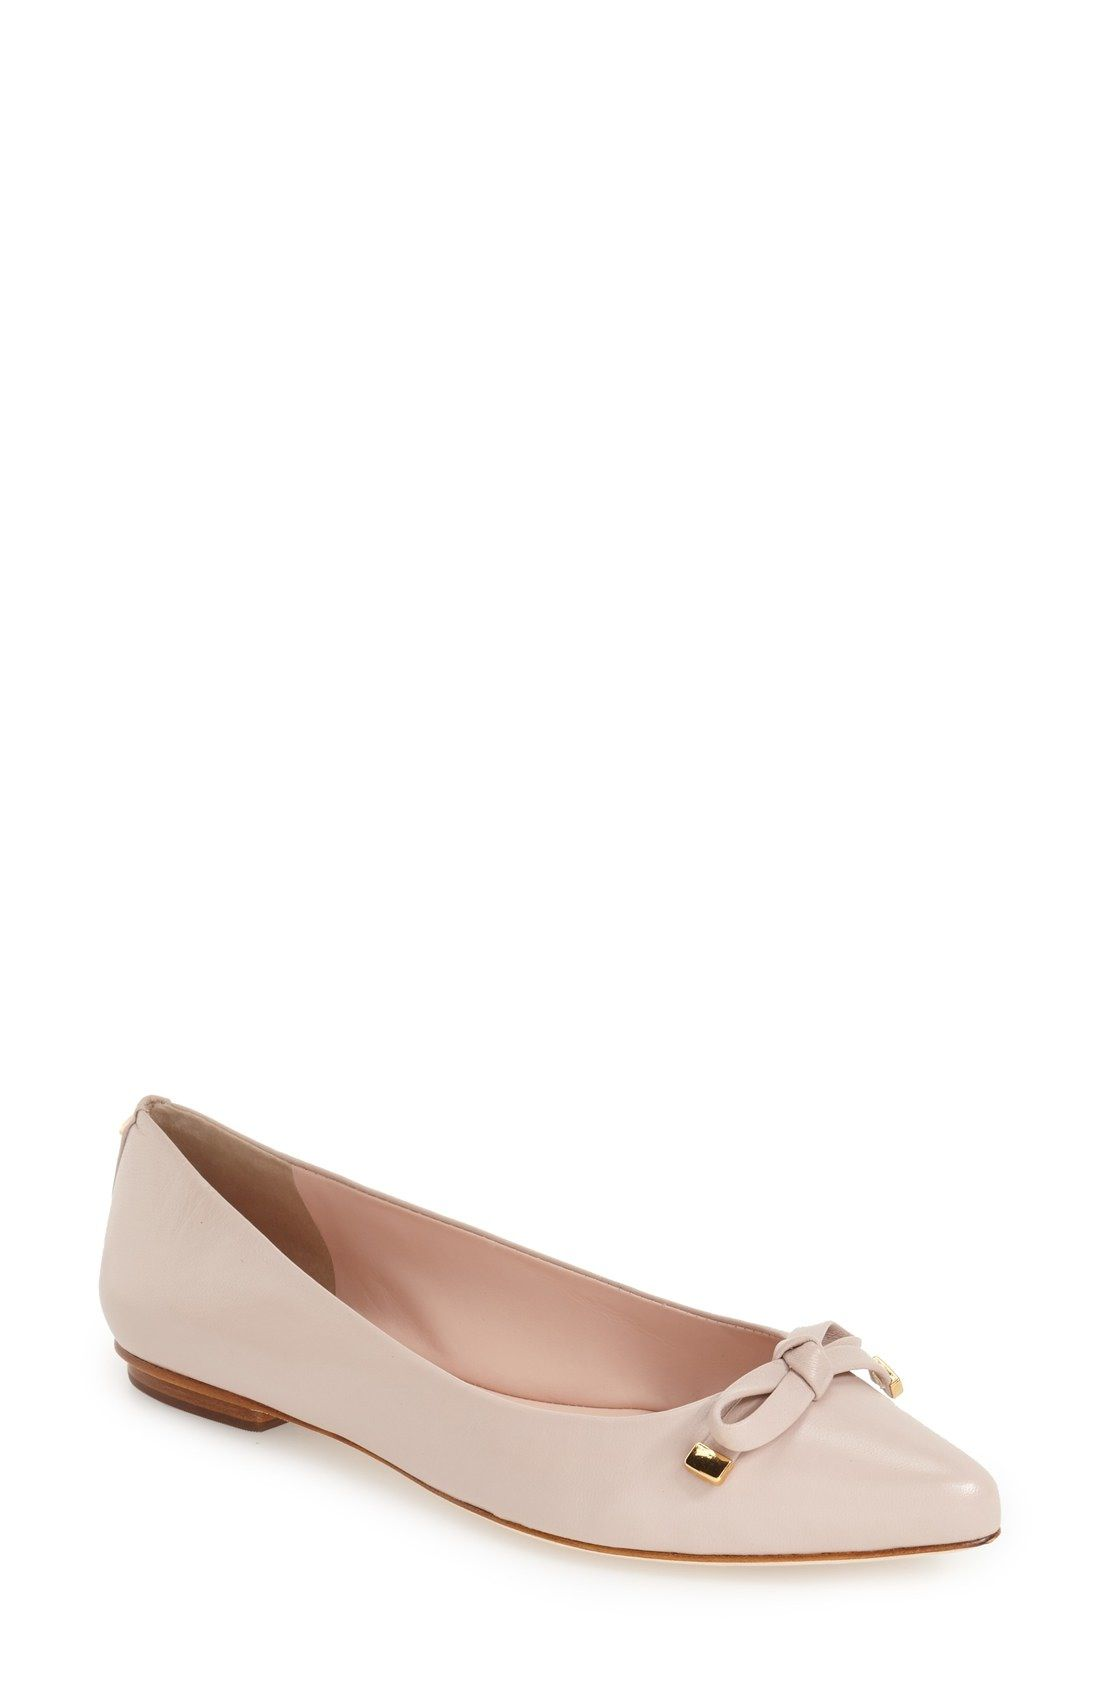 b5c5cd419 kate spade new york 'emma' pointy toe flat (Women) available at #Nordstrom